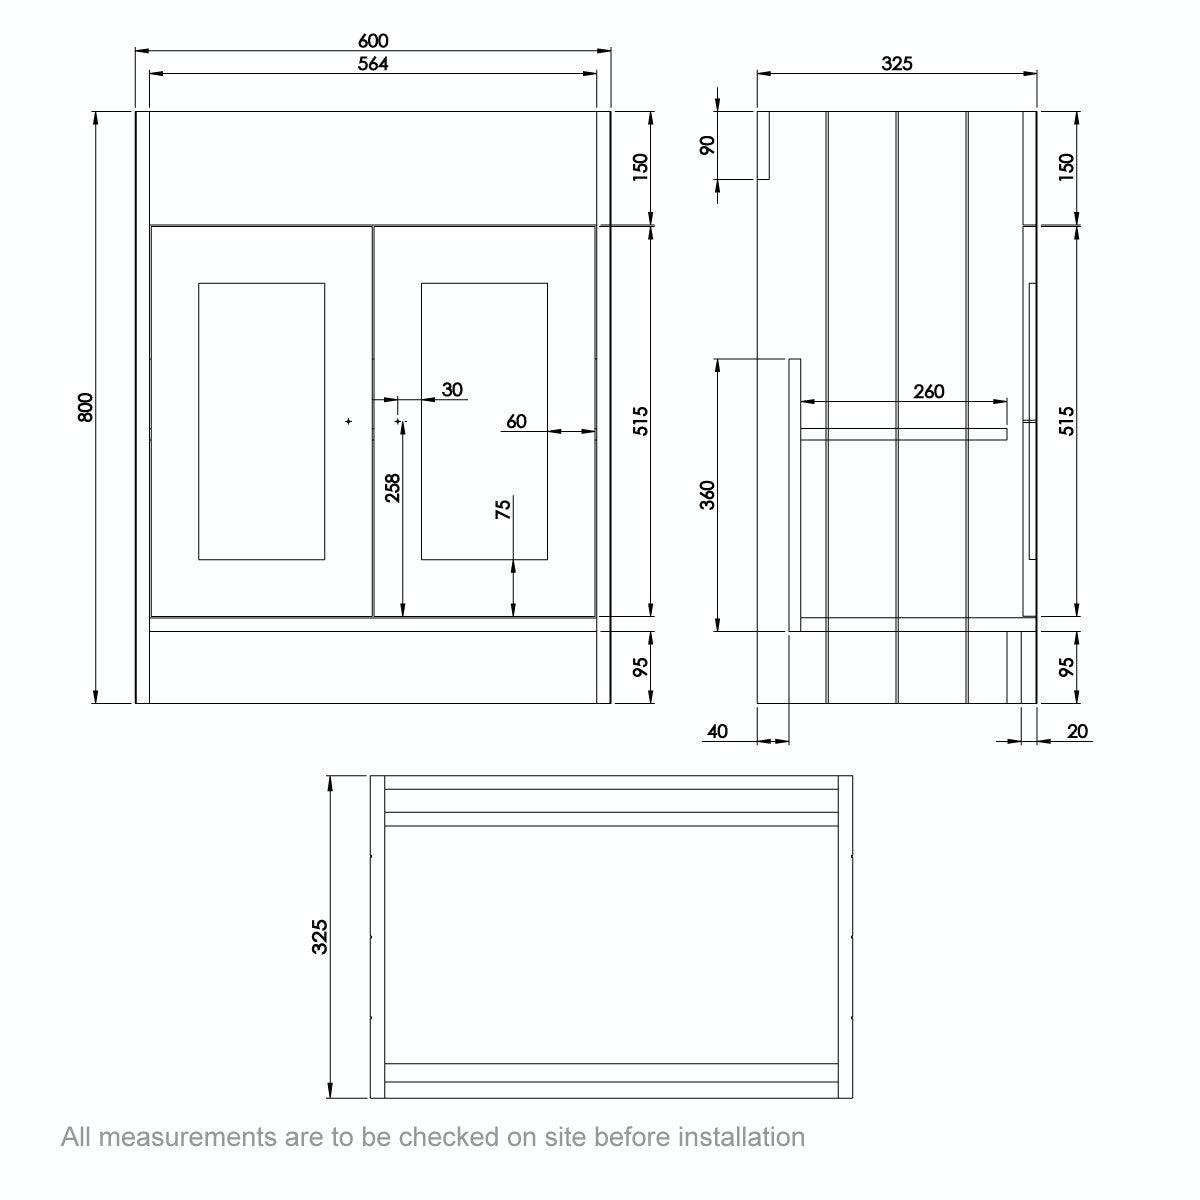 Dimensions for The Bath Co. Dulwich stone grey semi recessed vanity with basin 600mm